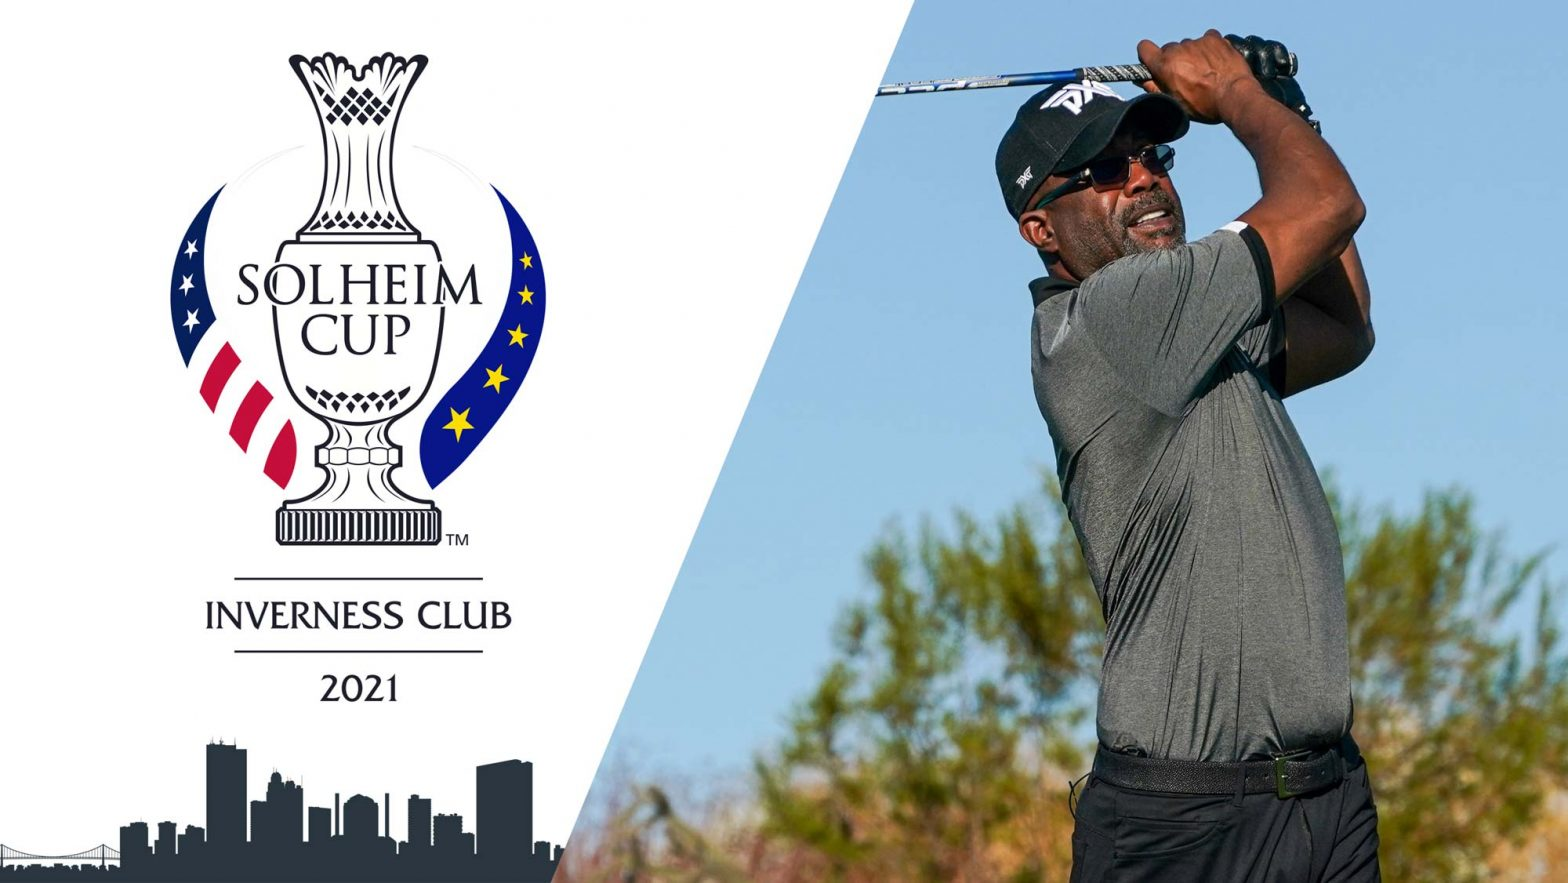 solheim-cup-adds-bmw-celebrity-match-to-event-week